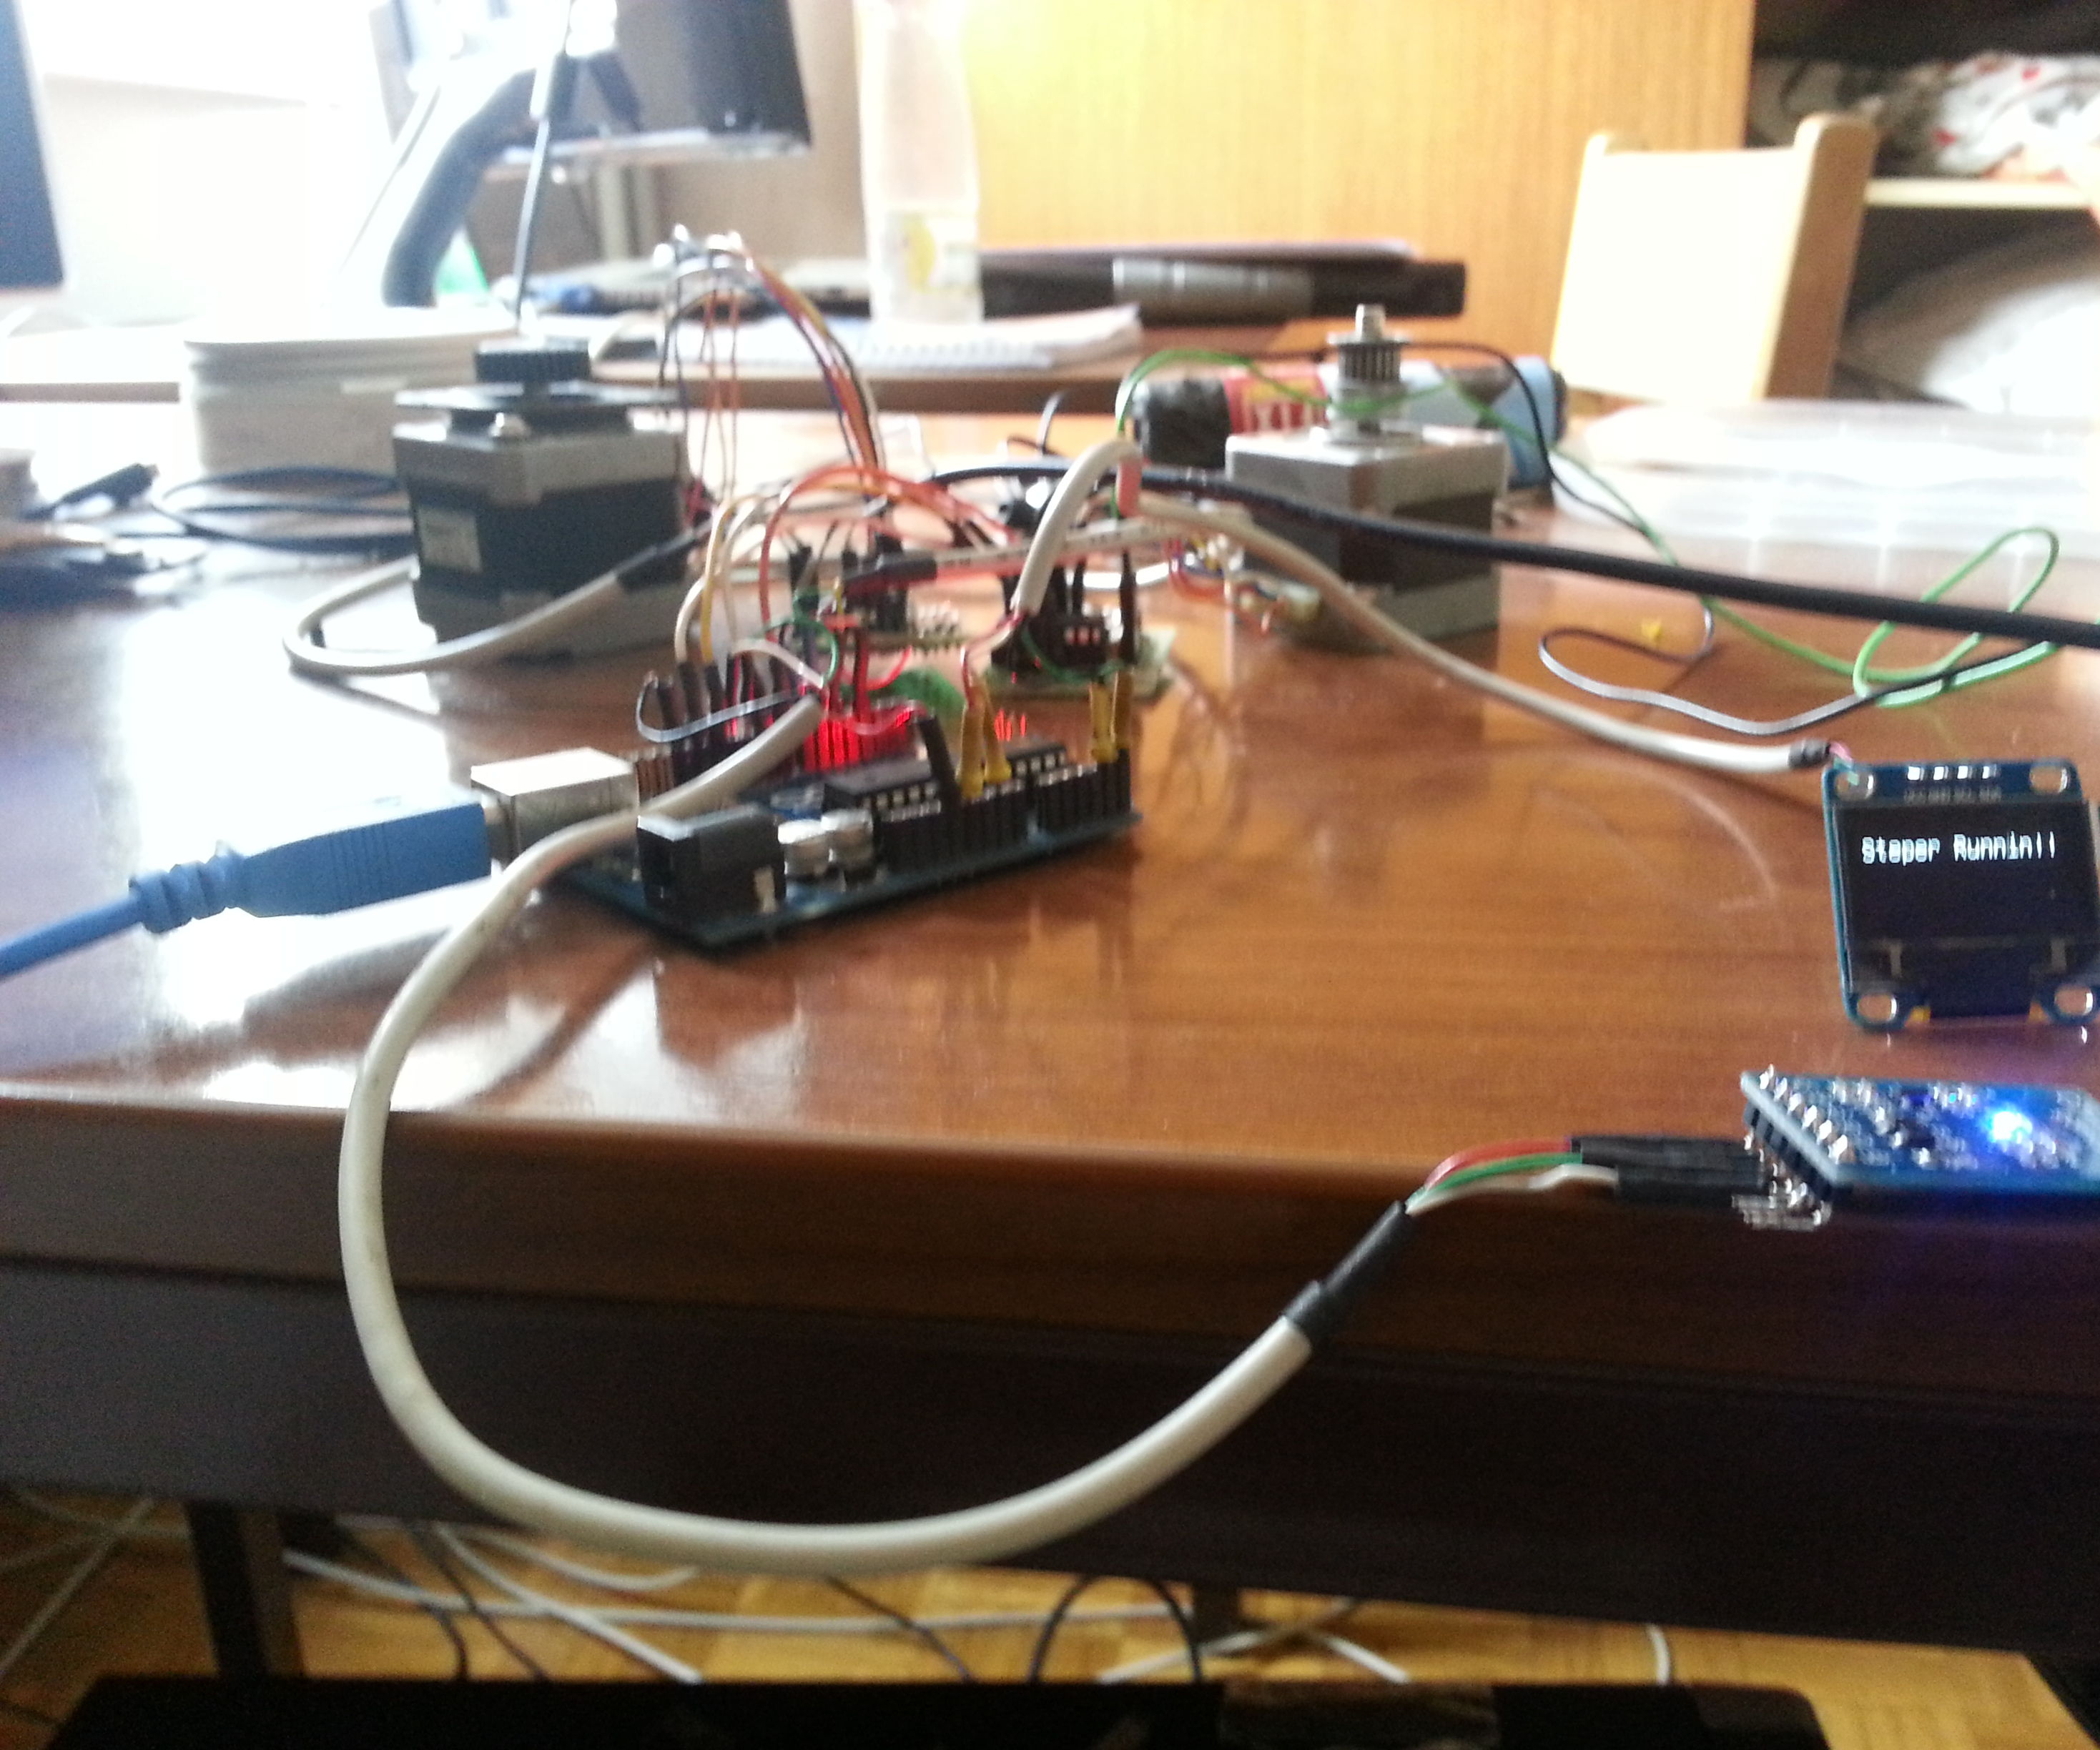 Connect stepper motor to arduino